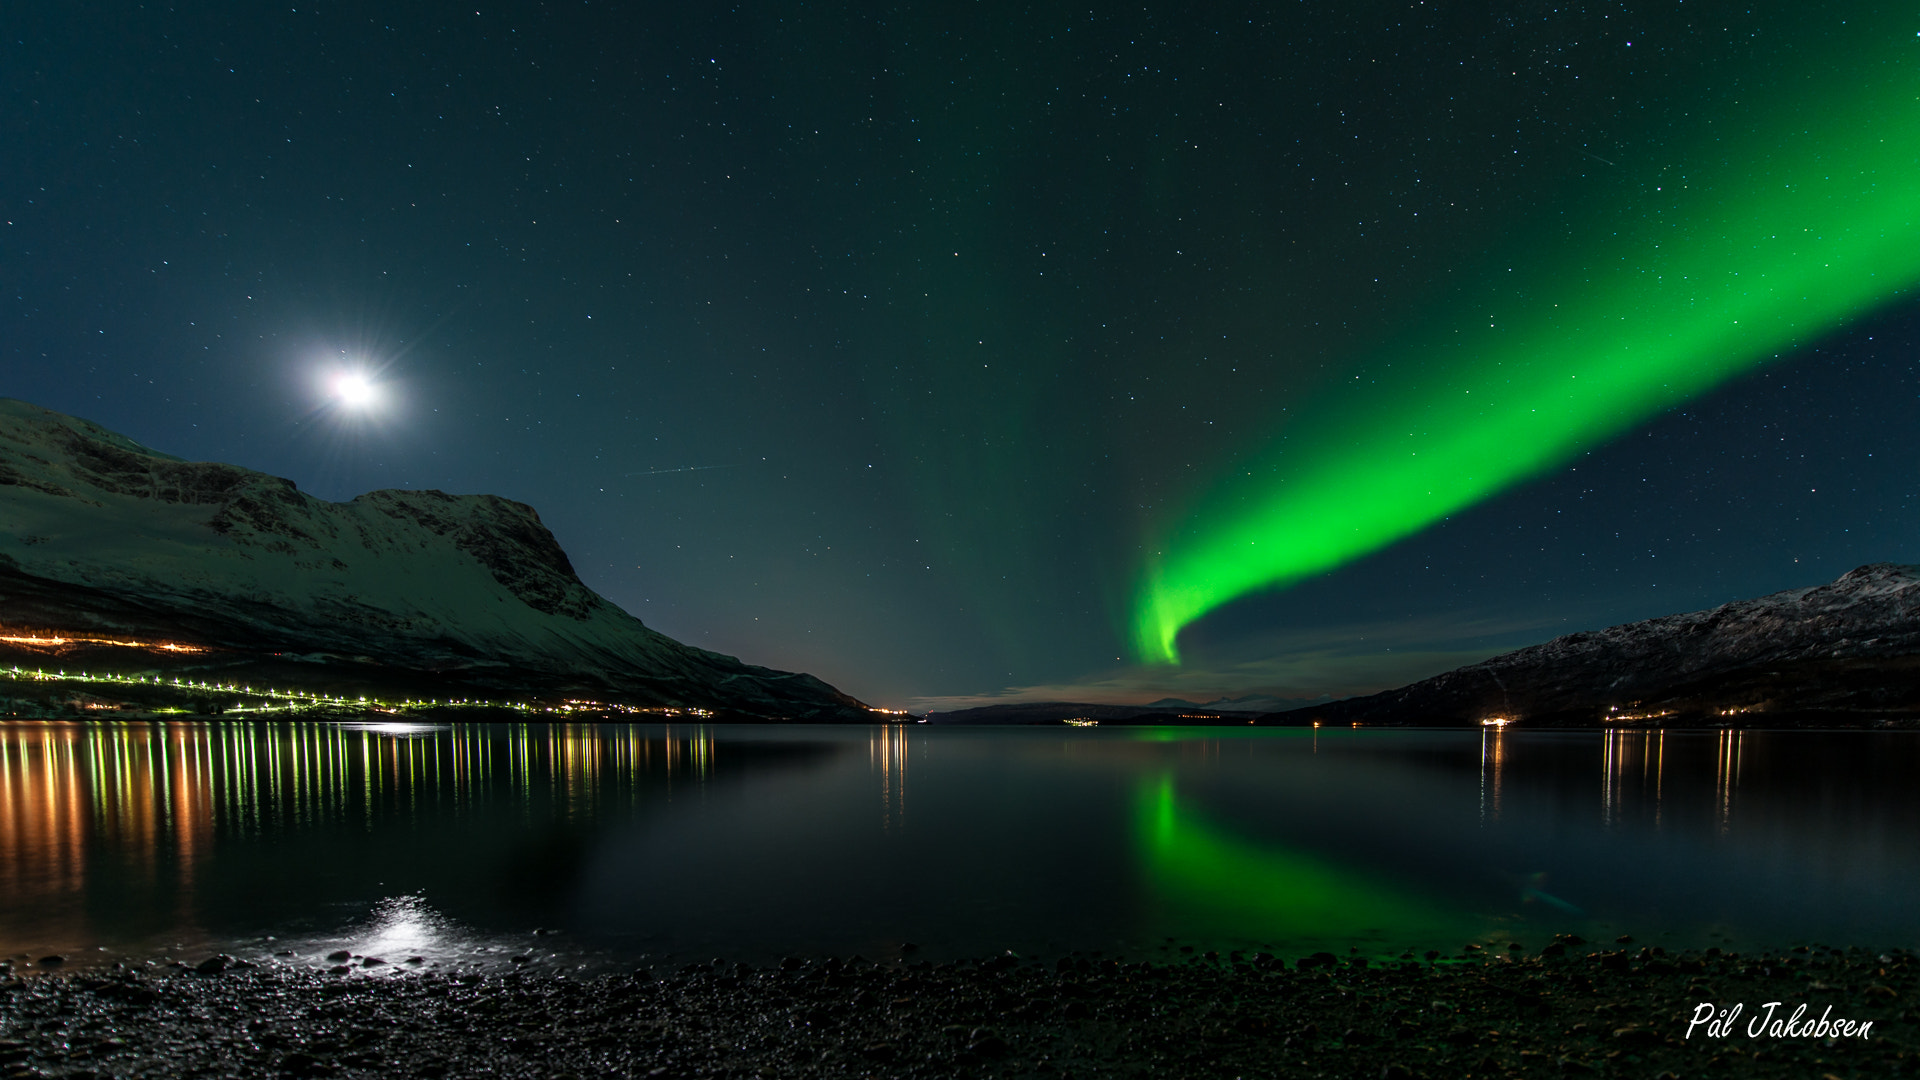 Photograph Moon light and Aurora borealis by Pål Jakobsen on 500px